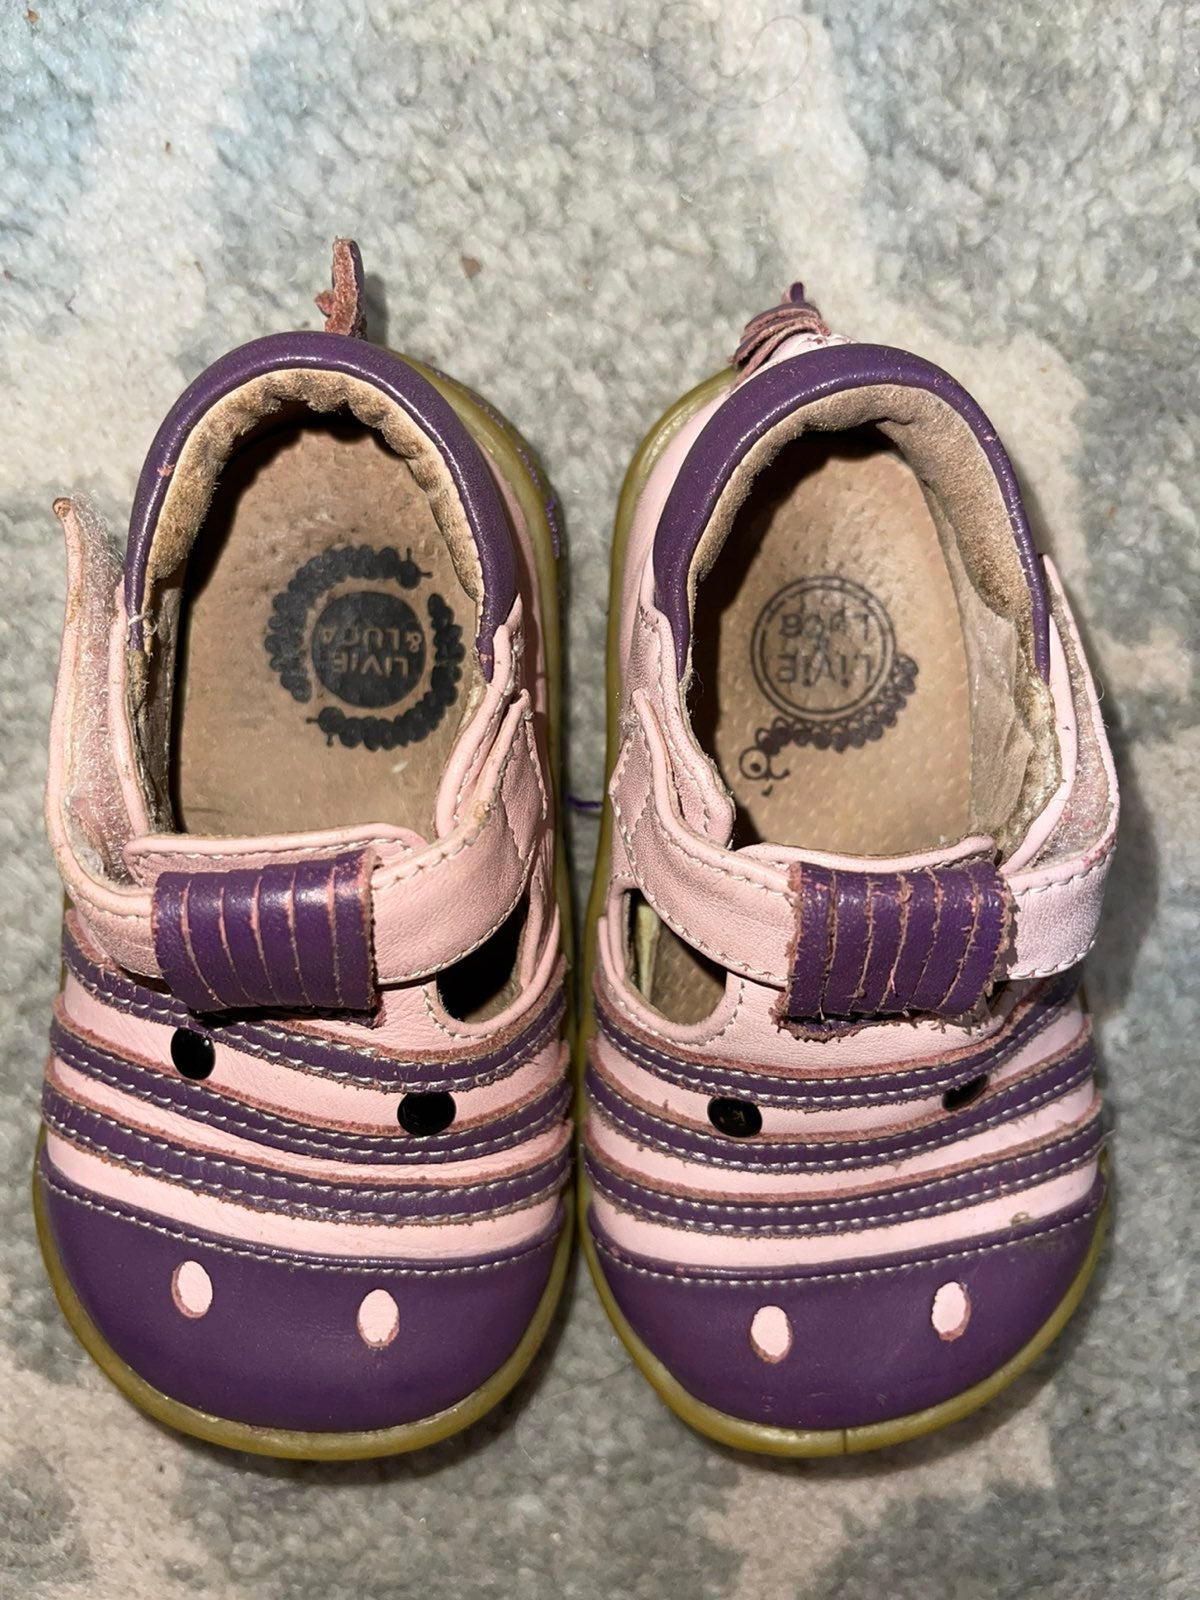 Livie and Luca Purple / Pink Zebras - 5T